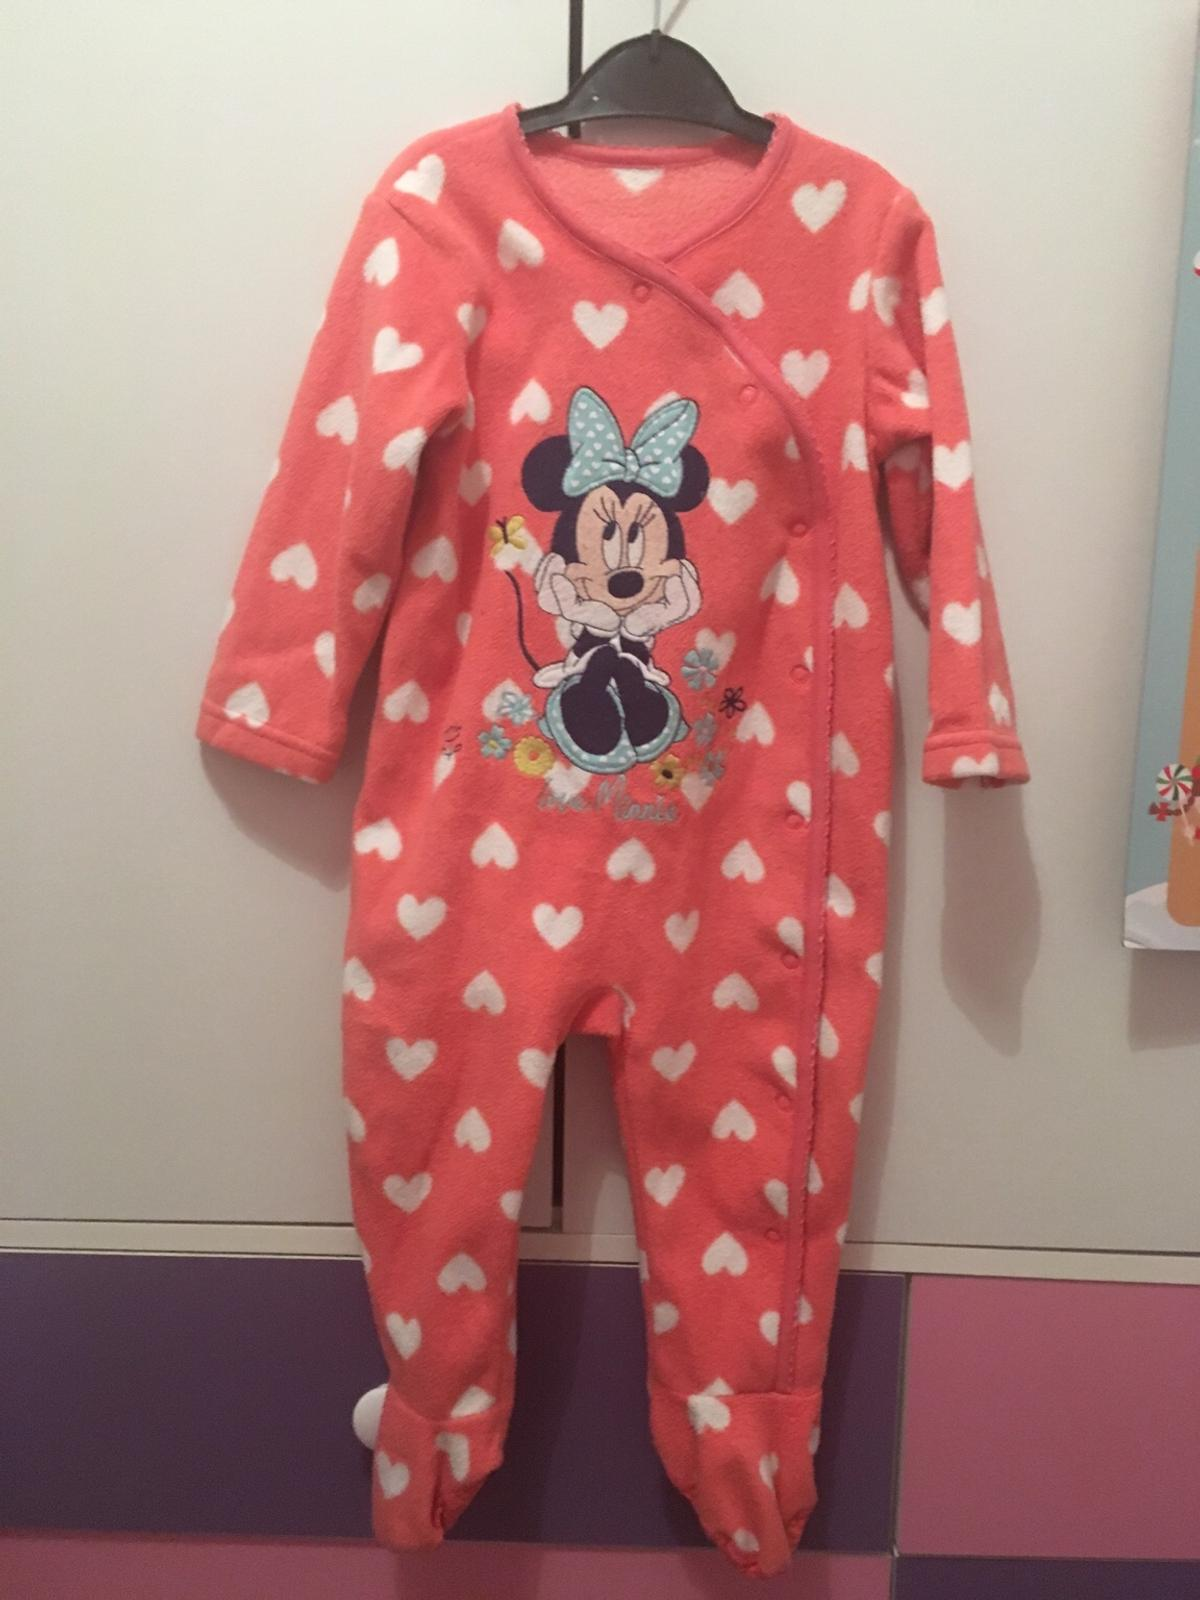 Minnie Mouse Baby Girl Sleepsuit 0-3 Months BNWT